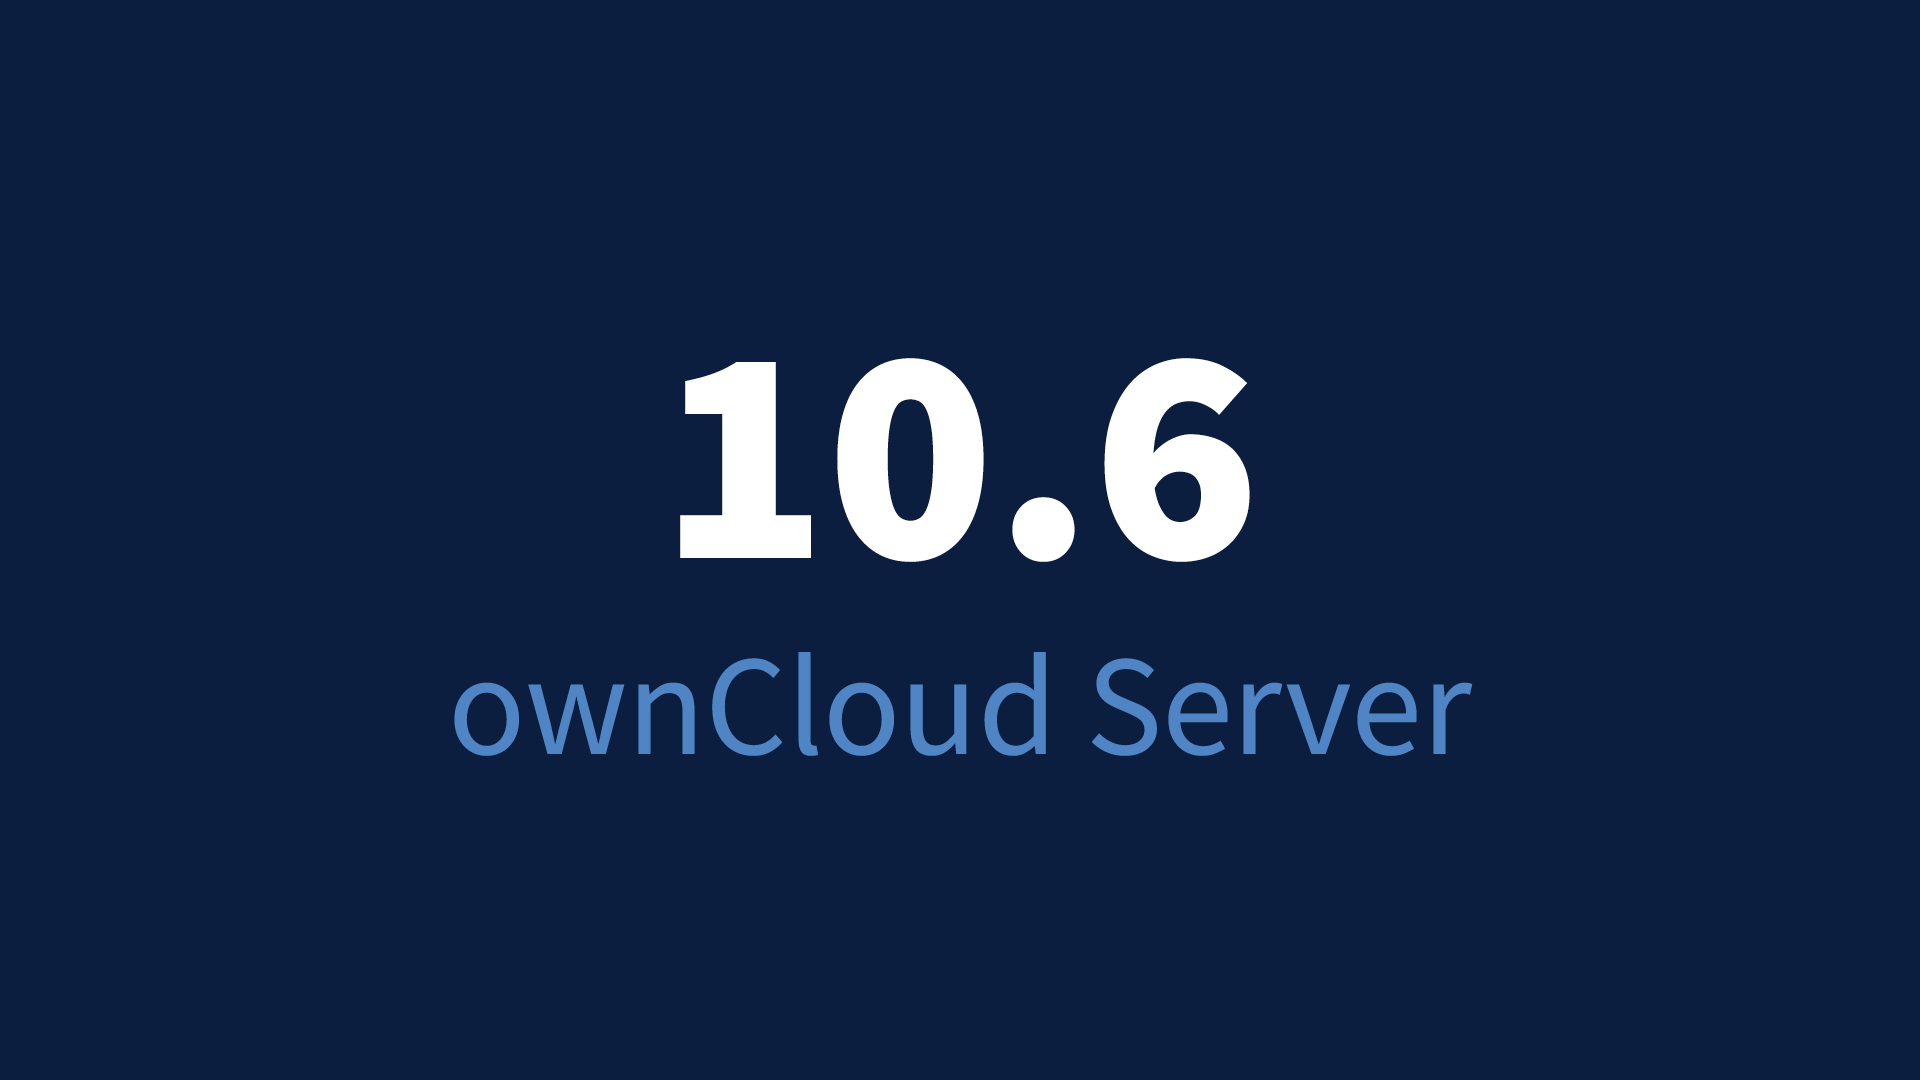 ownCloud Server 10.6 released